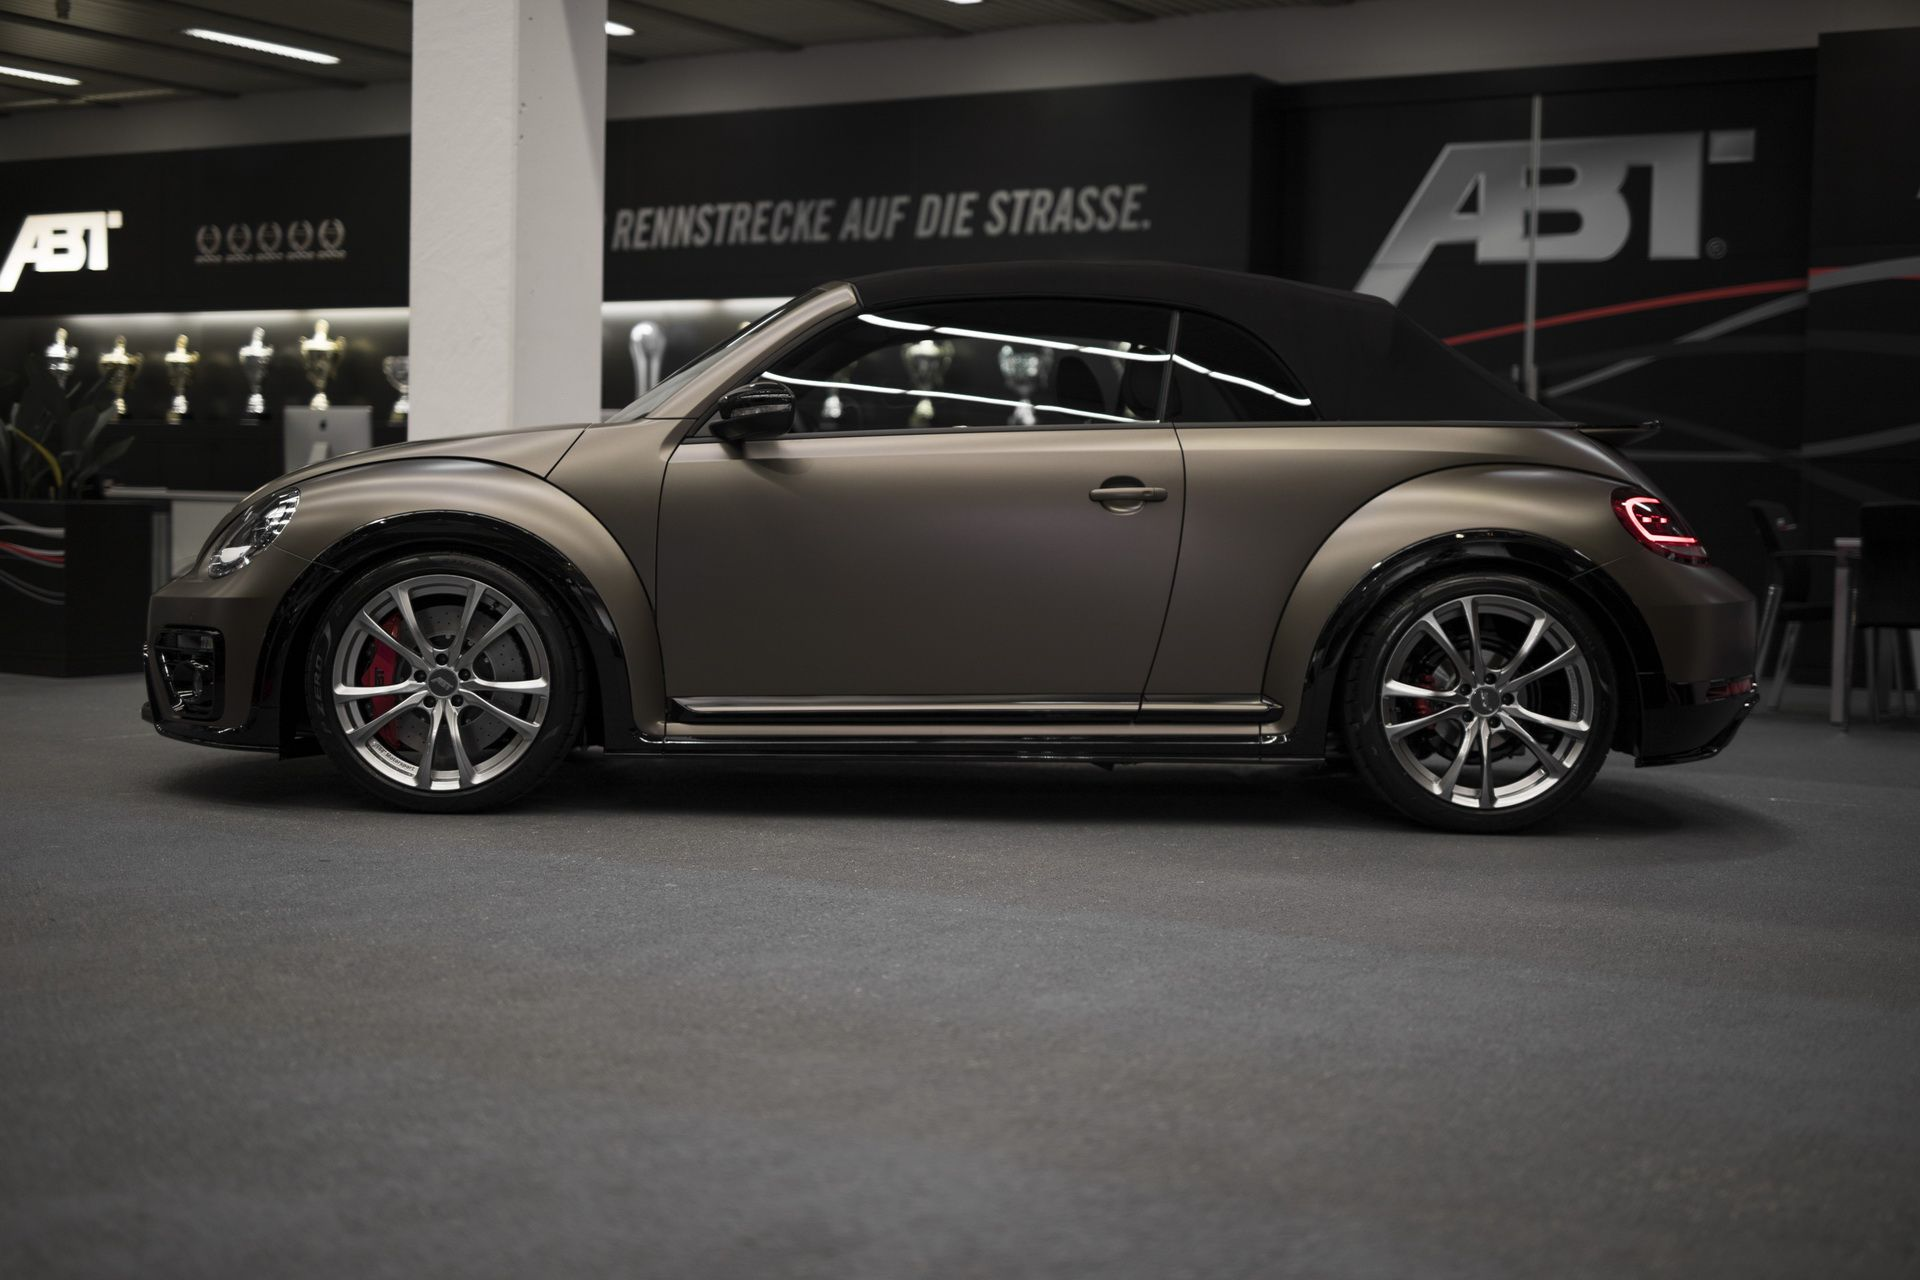 vw-beetle-abt-tuning-3